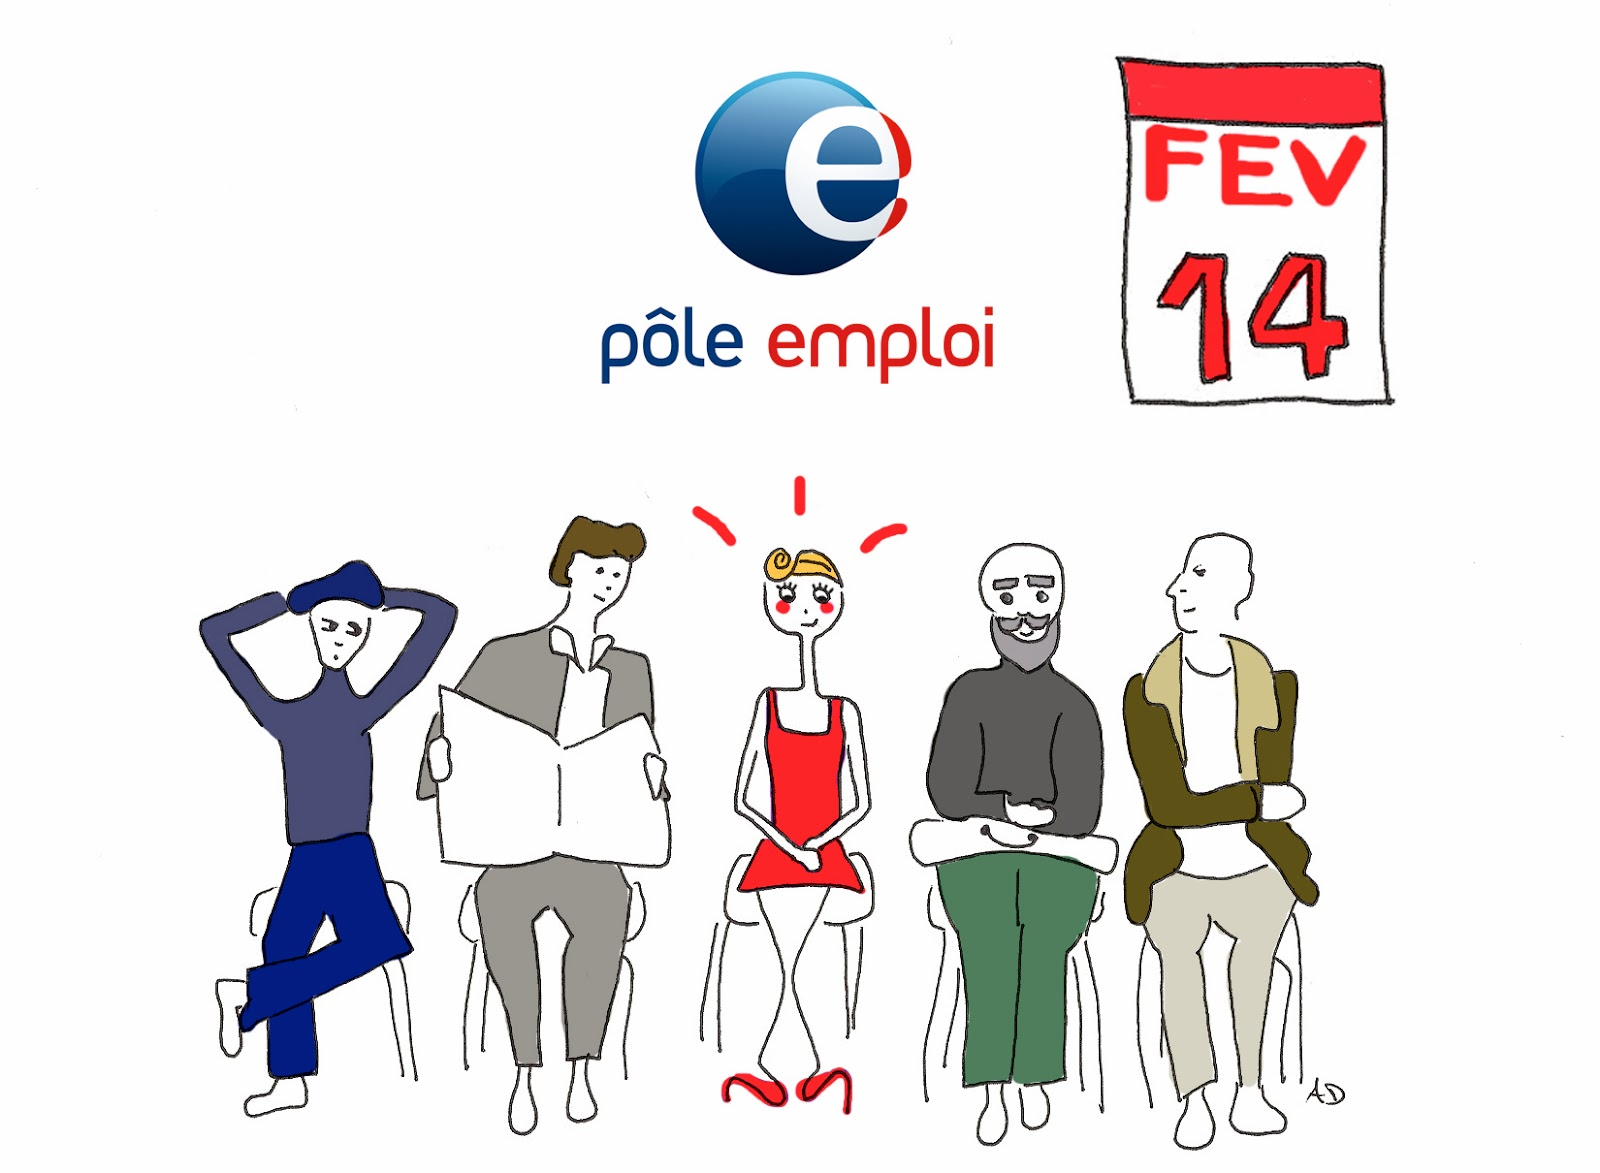 Saint Valentin Pole emploi Meetic